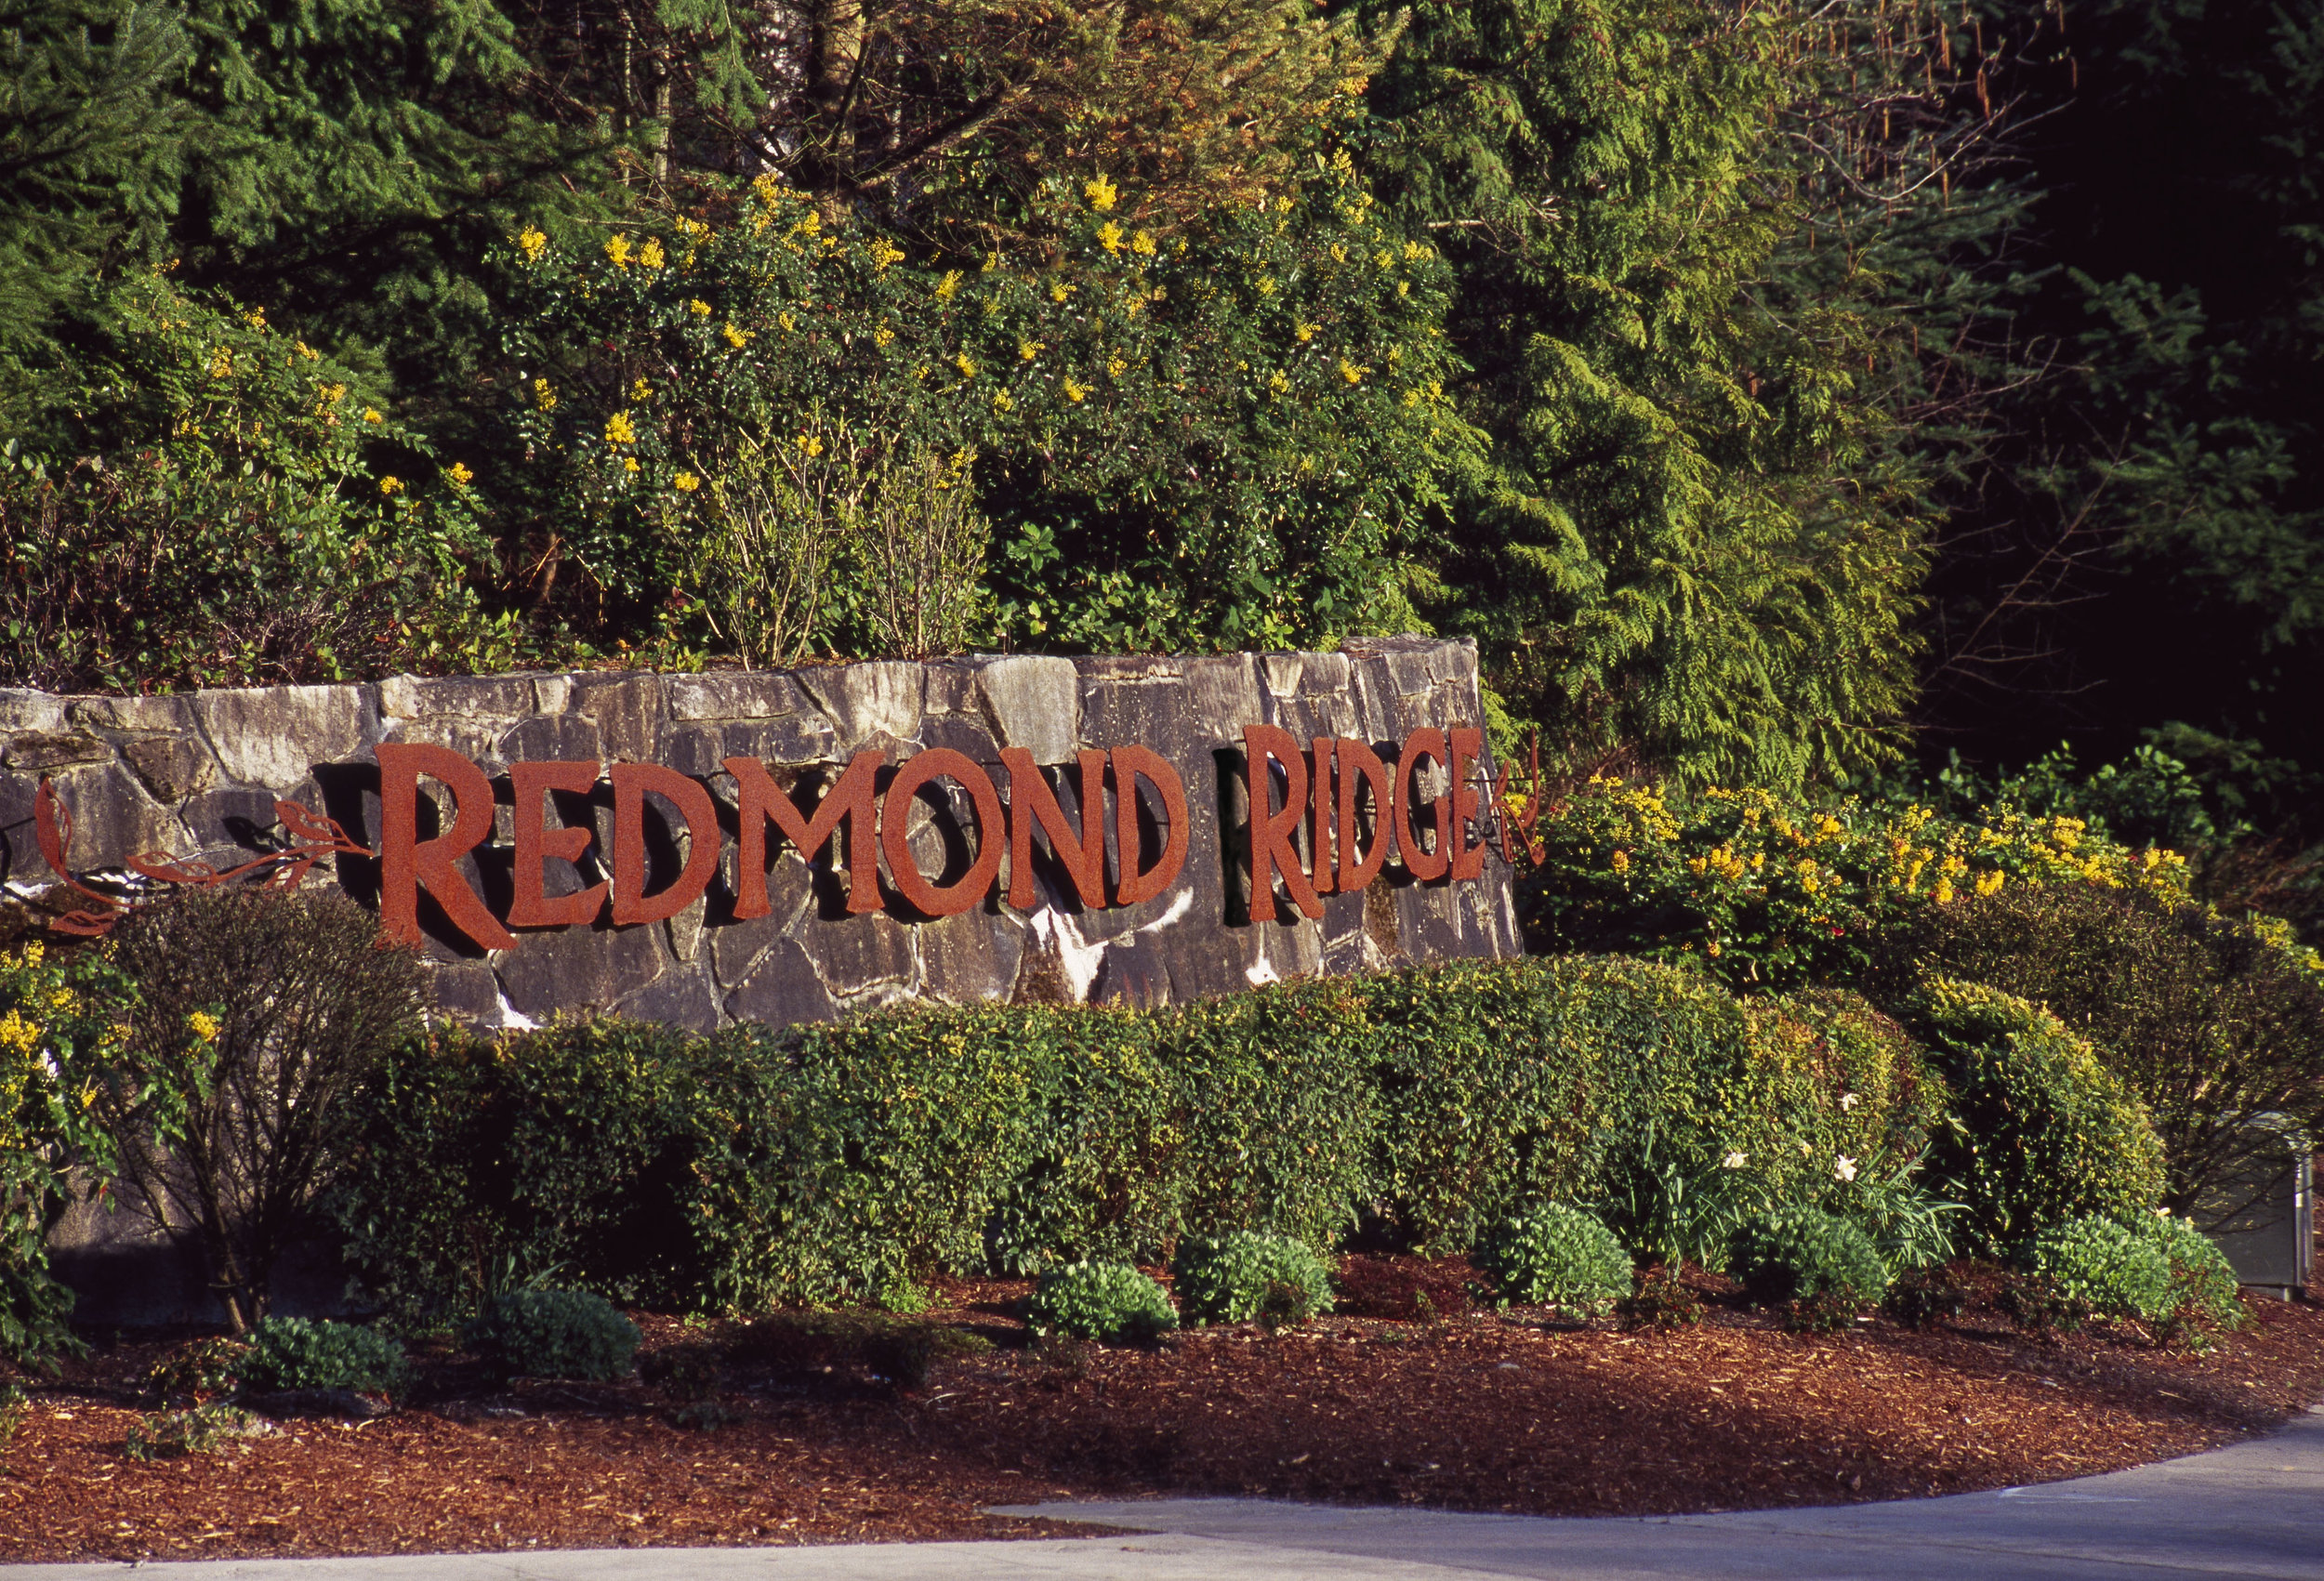 Redmond Ridge Sign